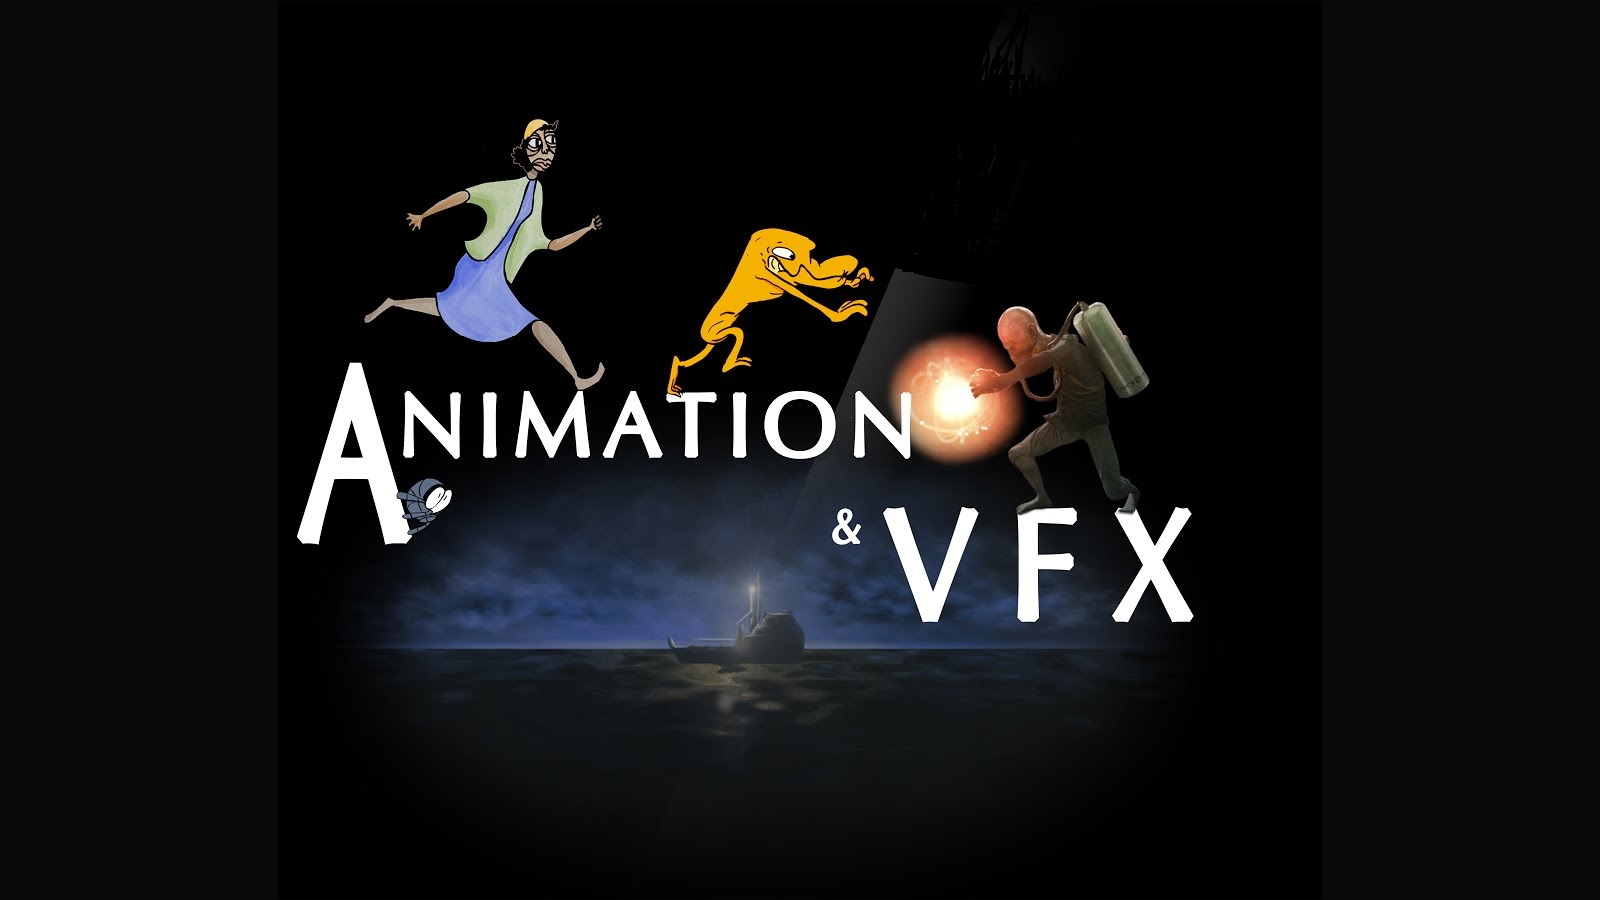 Just Few Tips To Cack Down Animation Or Vfx Job Interview